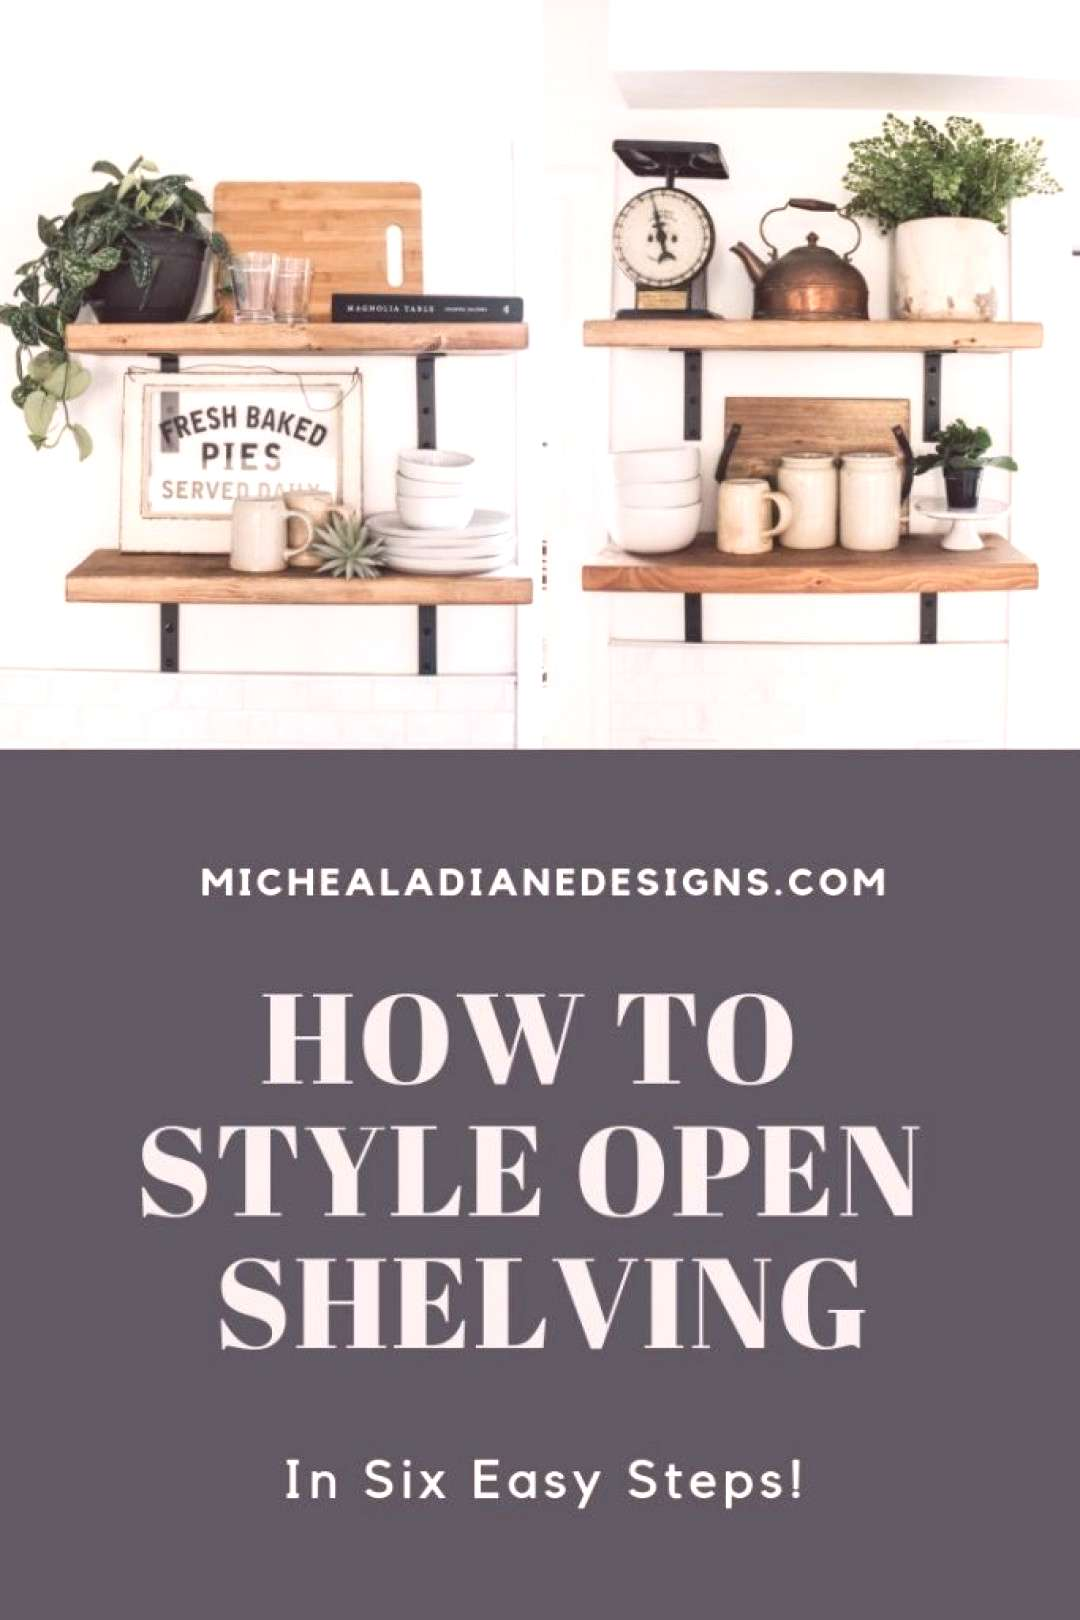 How to Style Open Shelving in Six Easy Steps. Styling open shelving doesnt have to complicated. Fo